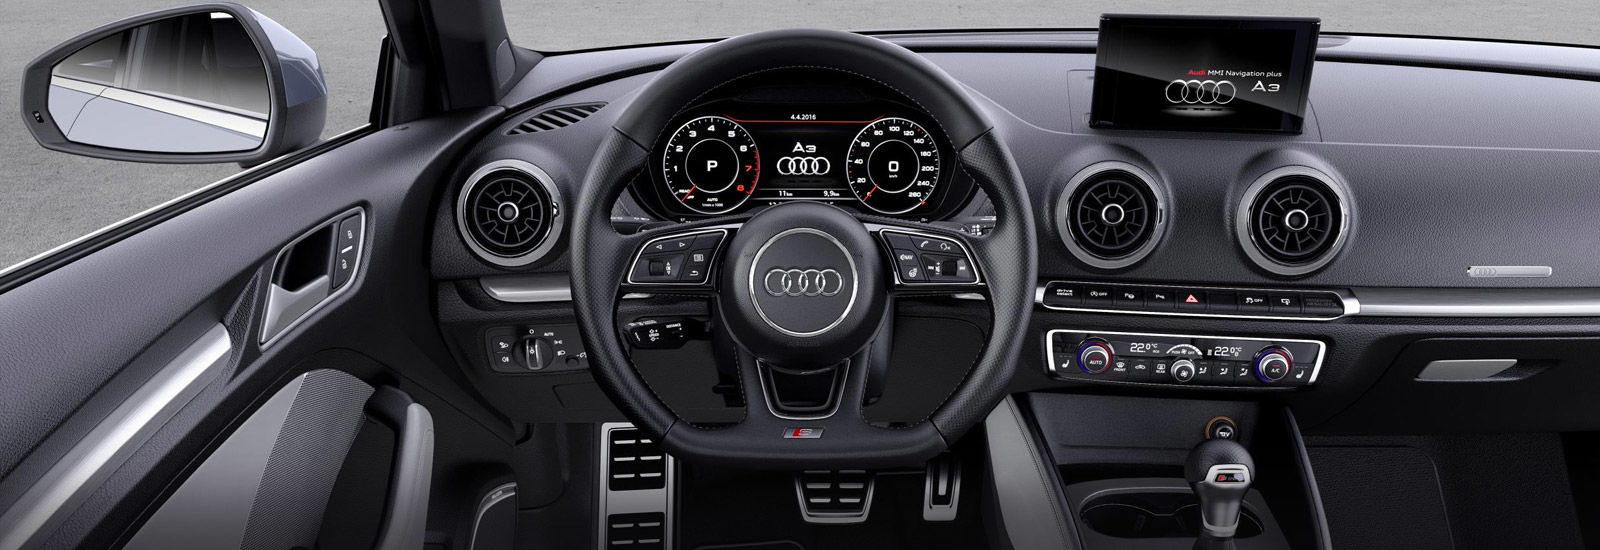 2019 Audi A3 Coupe Price Specs And Release Date Carwow